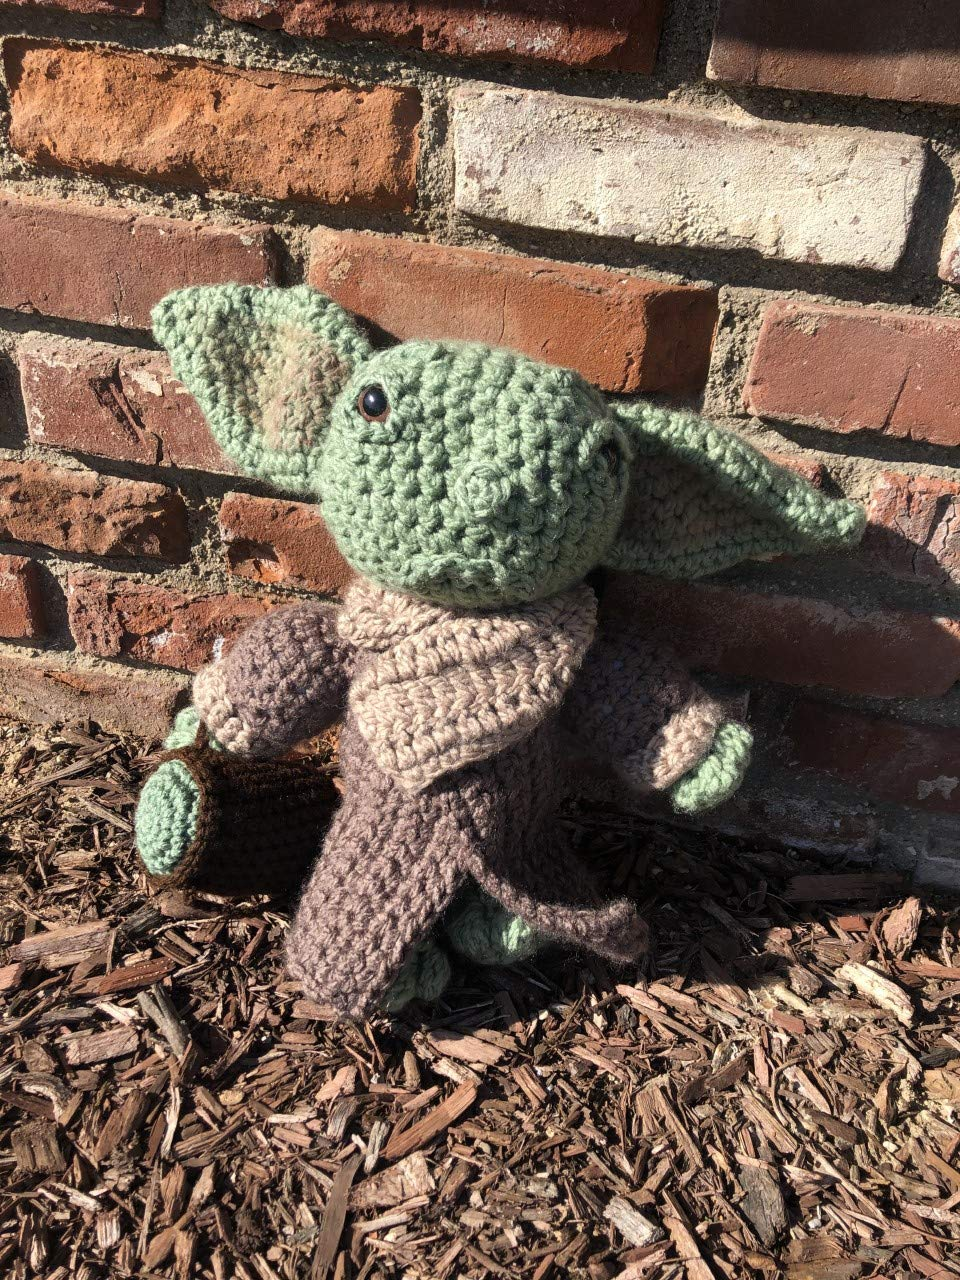 10+ Star Wars Yoda Crochet Patterns | Star wars crochet, Crochet ... | 1280x960